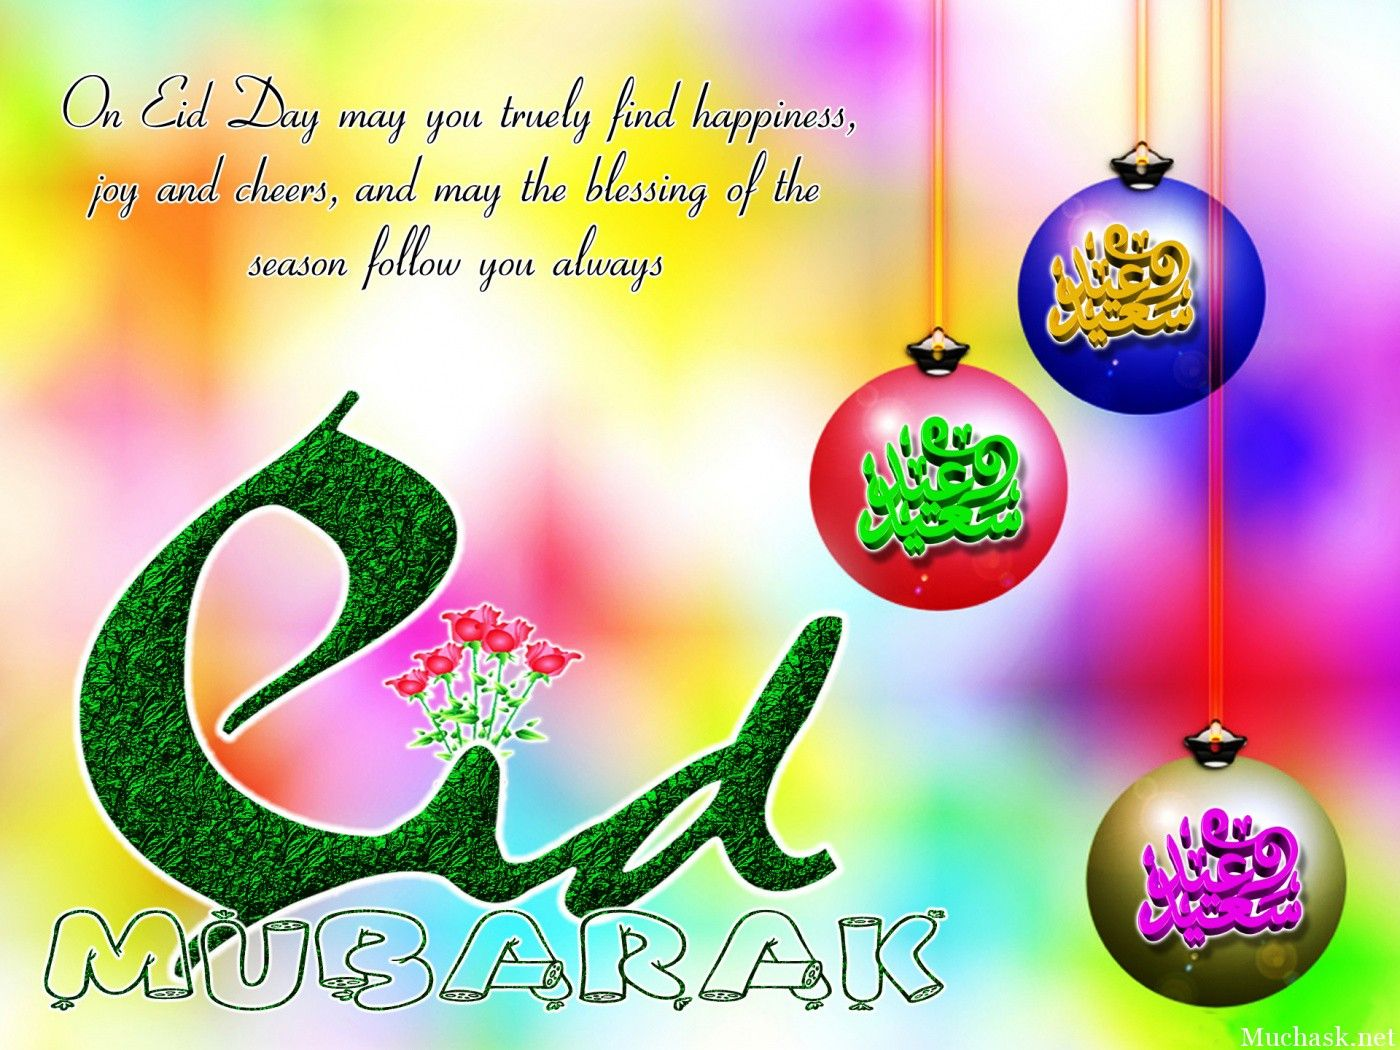 Eid mubarak 2015 is coming check out the meaning of eid mubarak in happy eid ul azha hd wallpapers quotes image photos for desktop kristyandbryce Choice Image